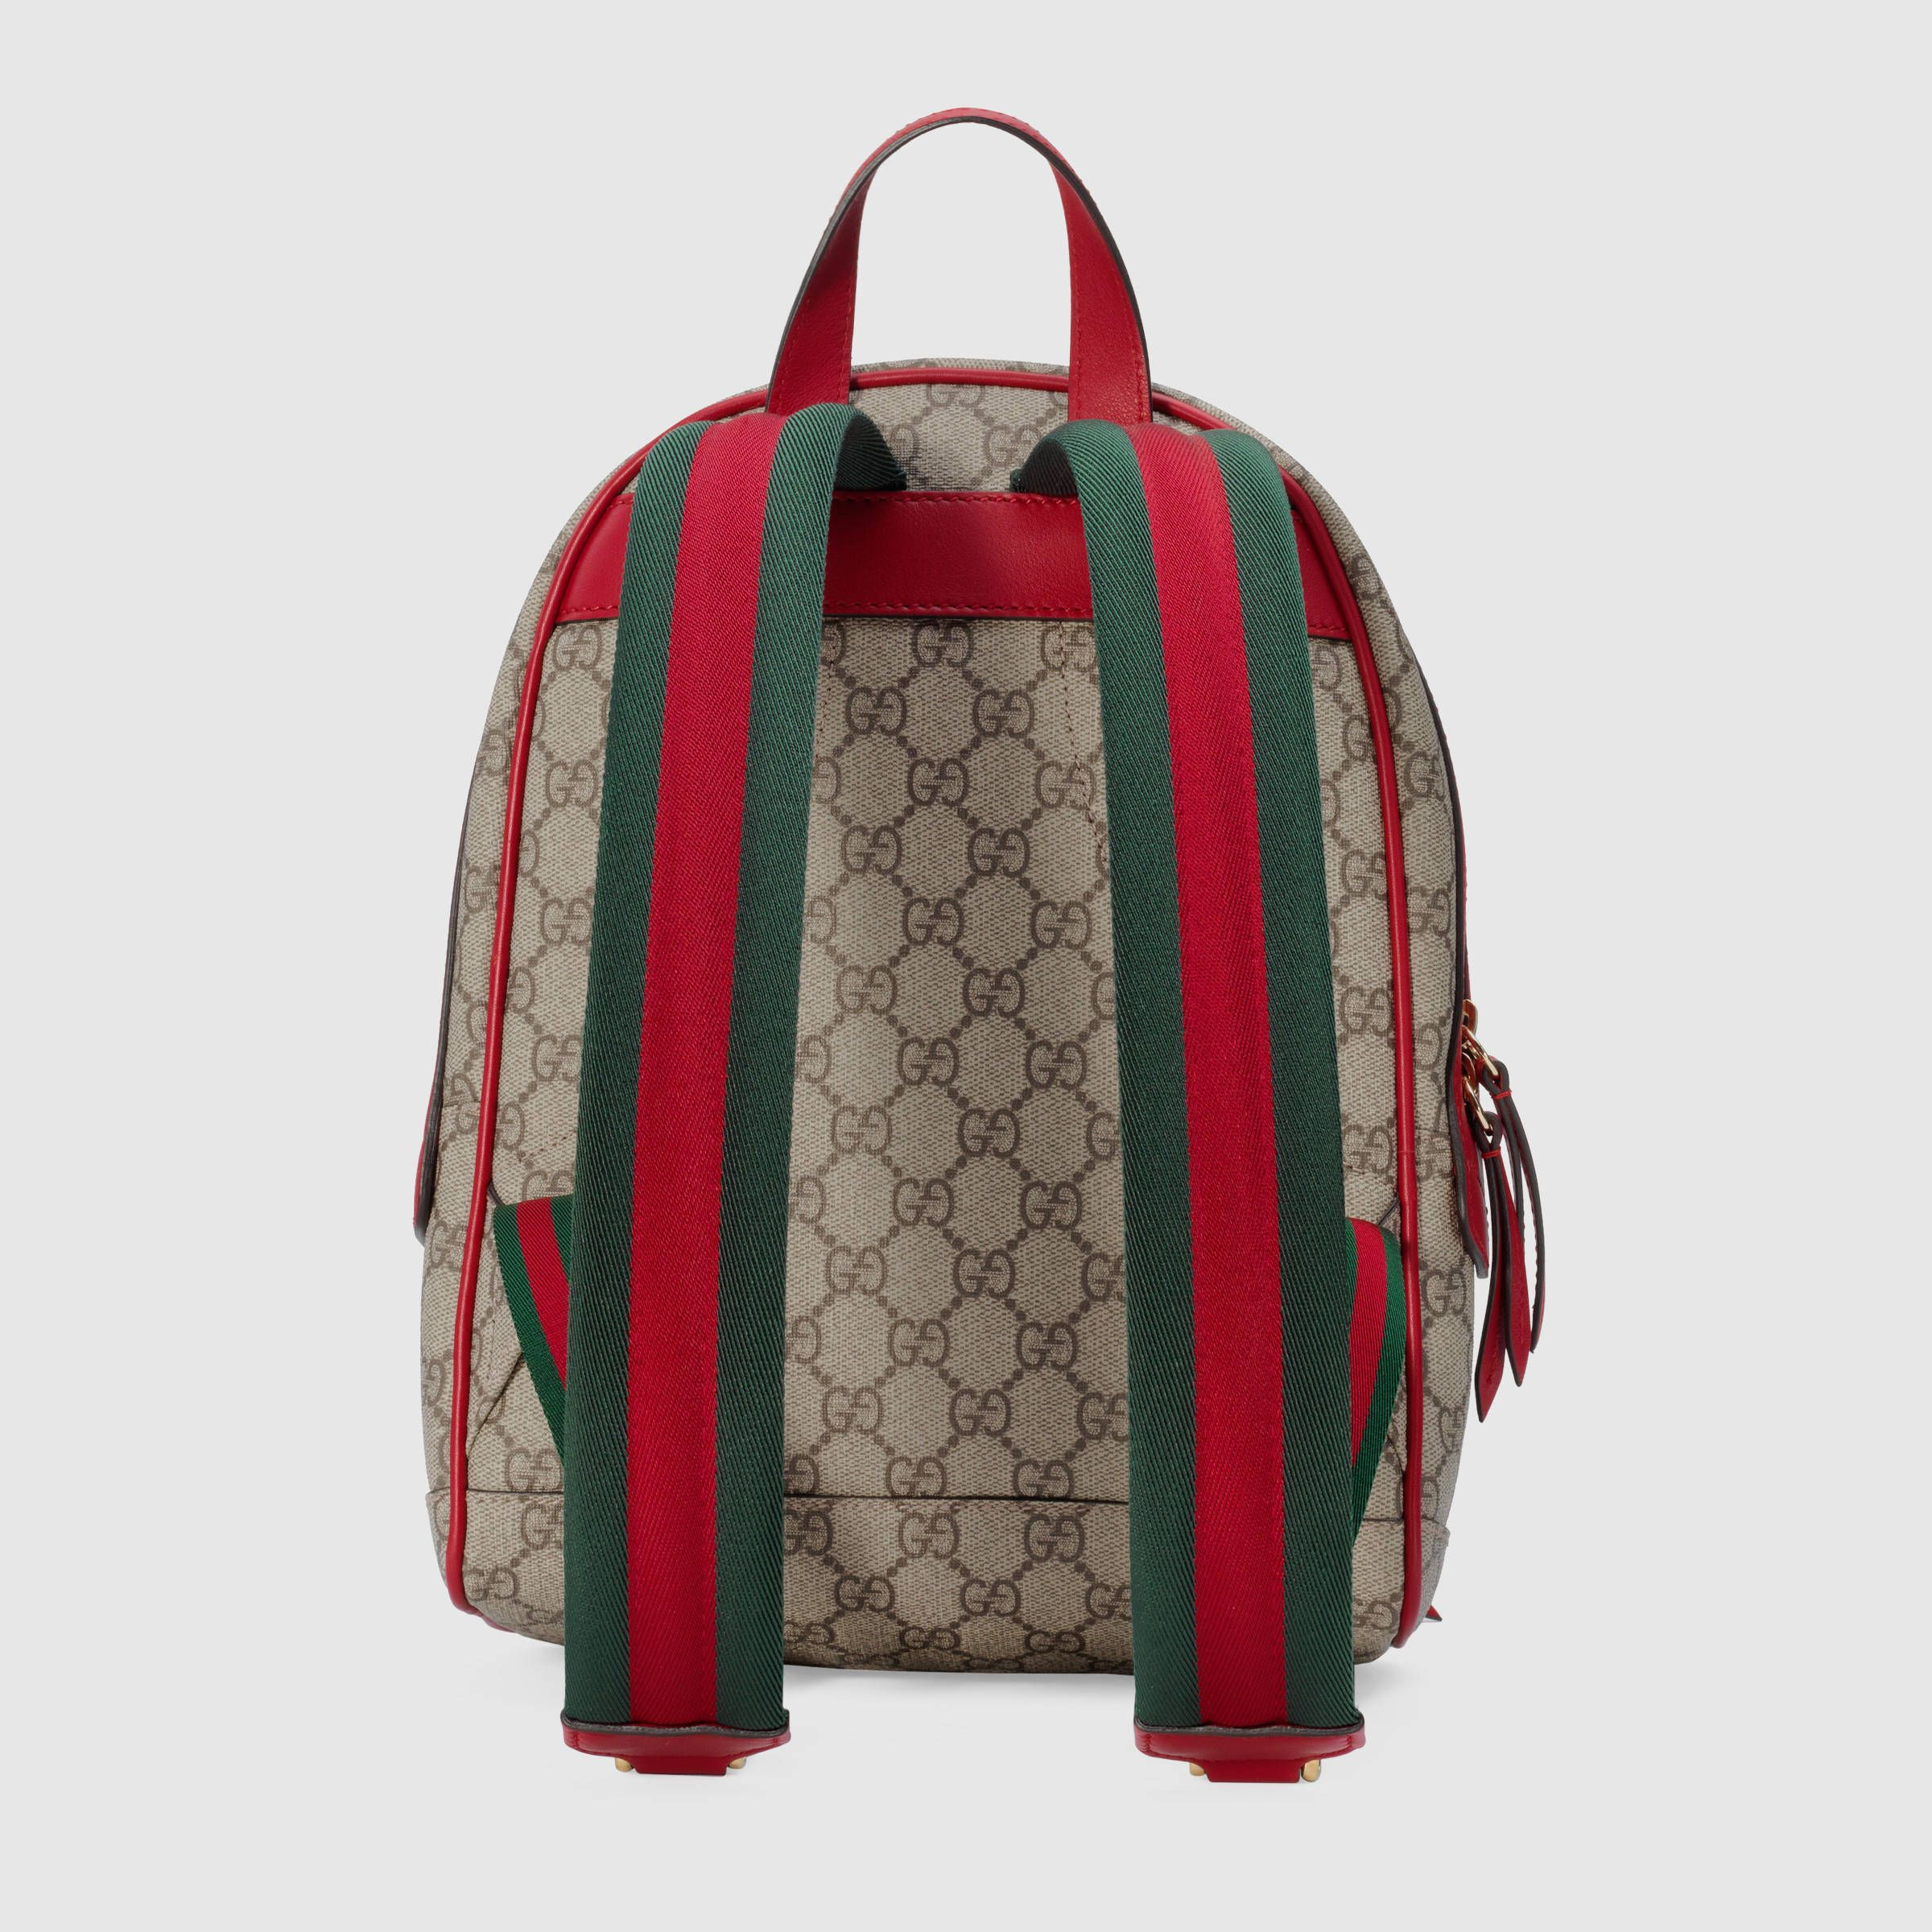 ba45dc844 Limited Edition GG Supreme backpack - Gucci Women's Backpacks ...